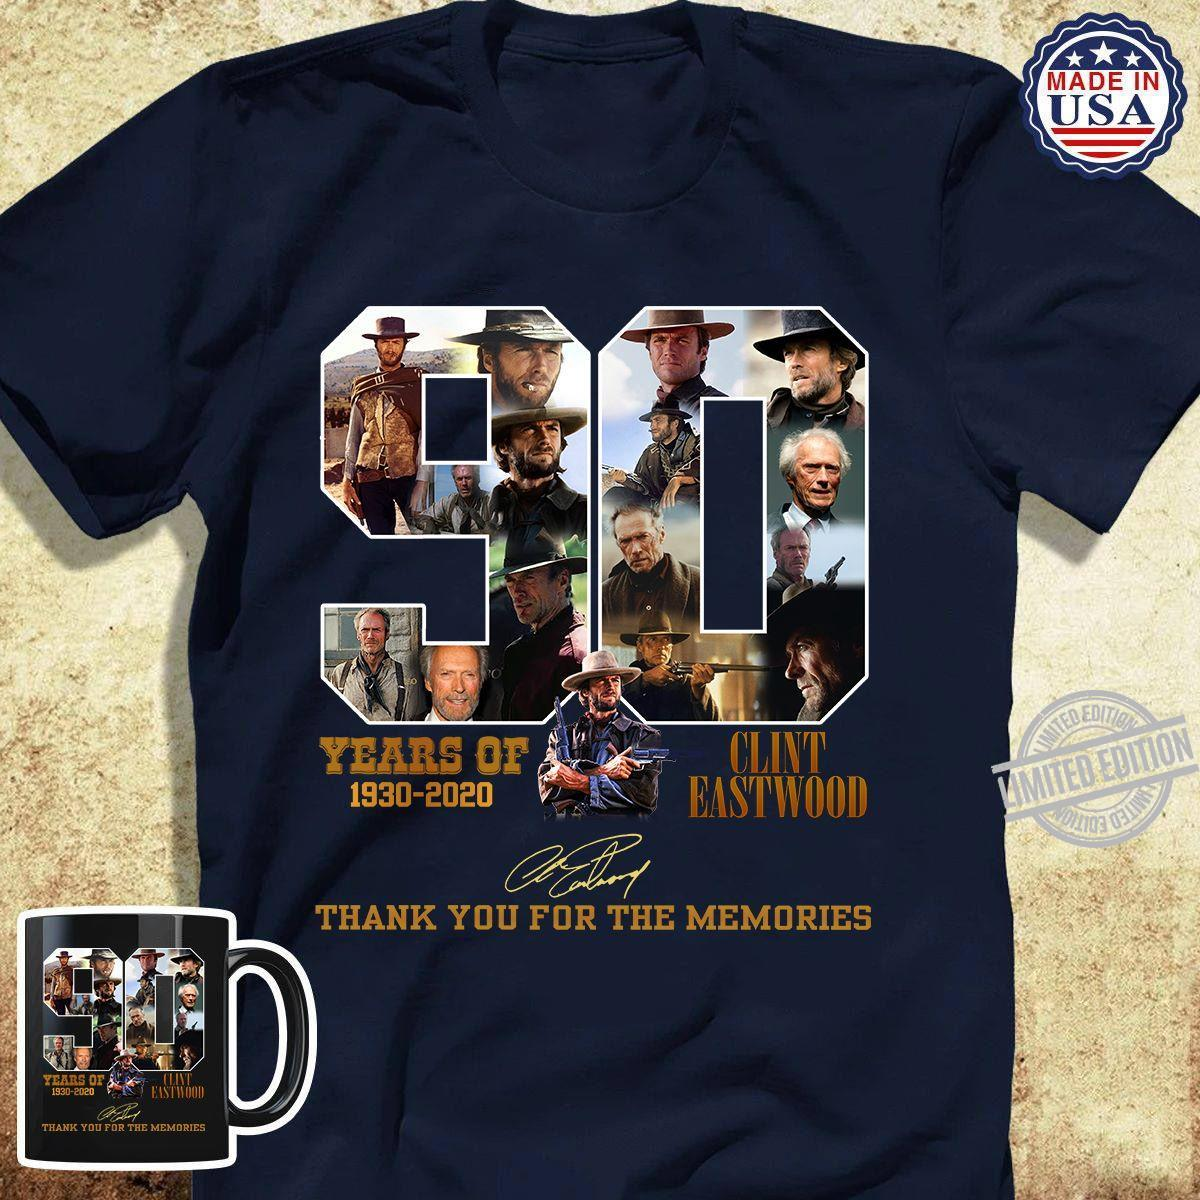 90 Years Of 1930-2020 Clint Eastwood Thank You For The Memories Shirt